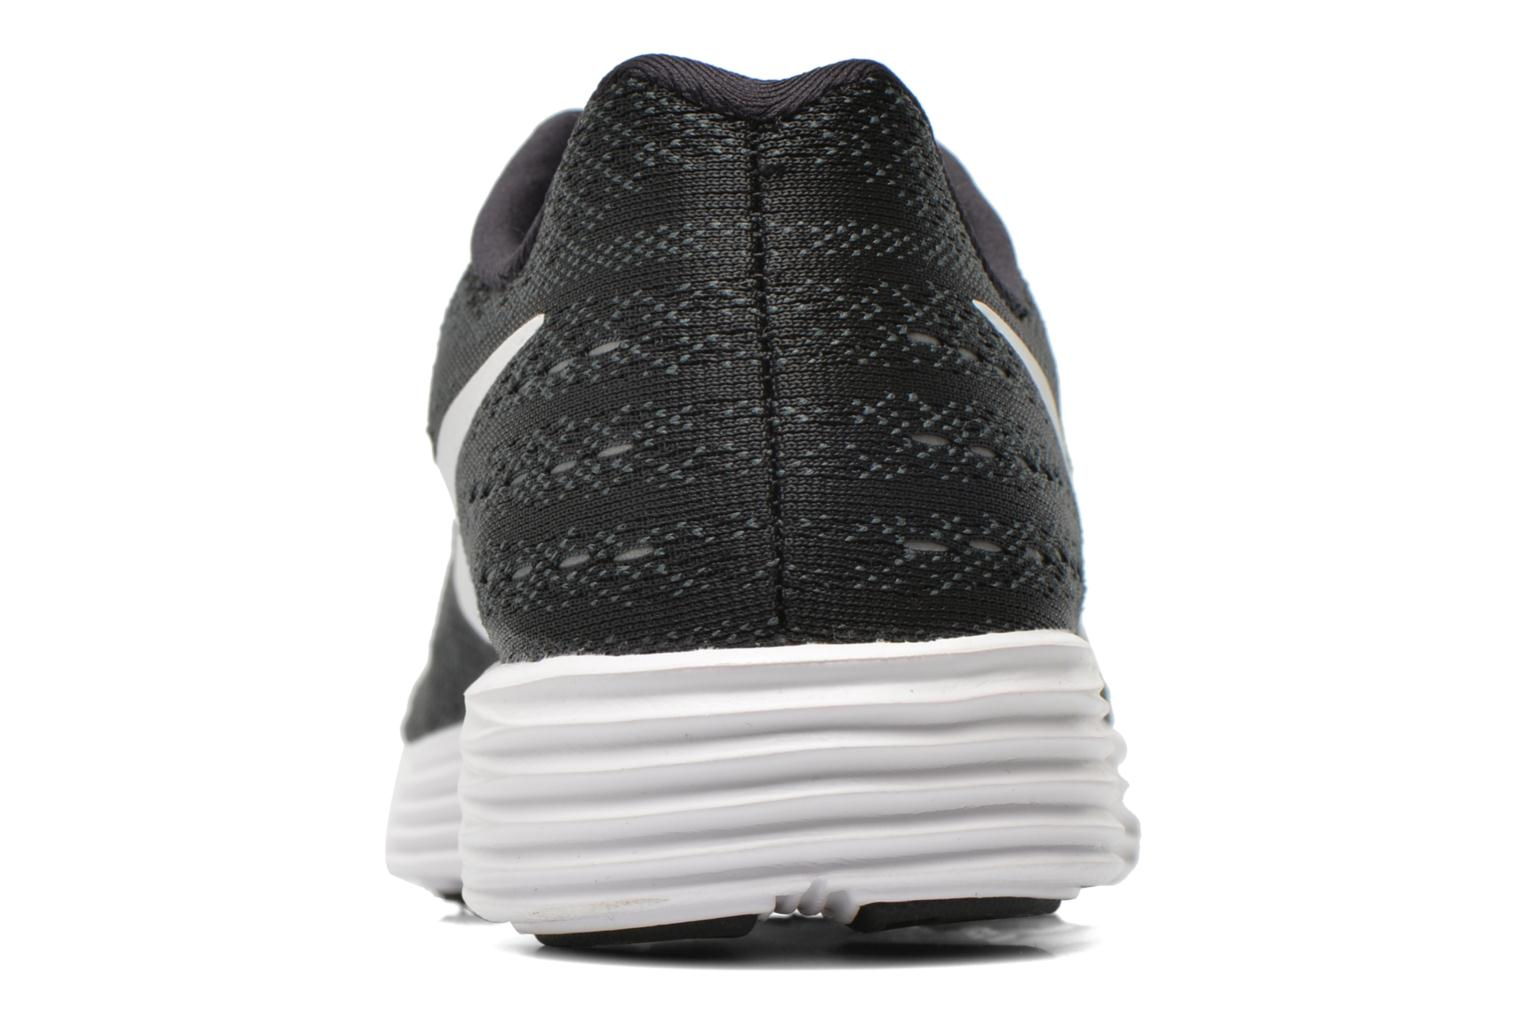 Nike Lunartempo 2 Black/white-anthracite